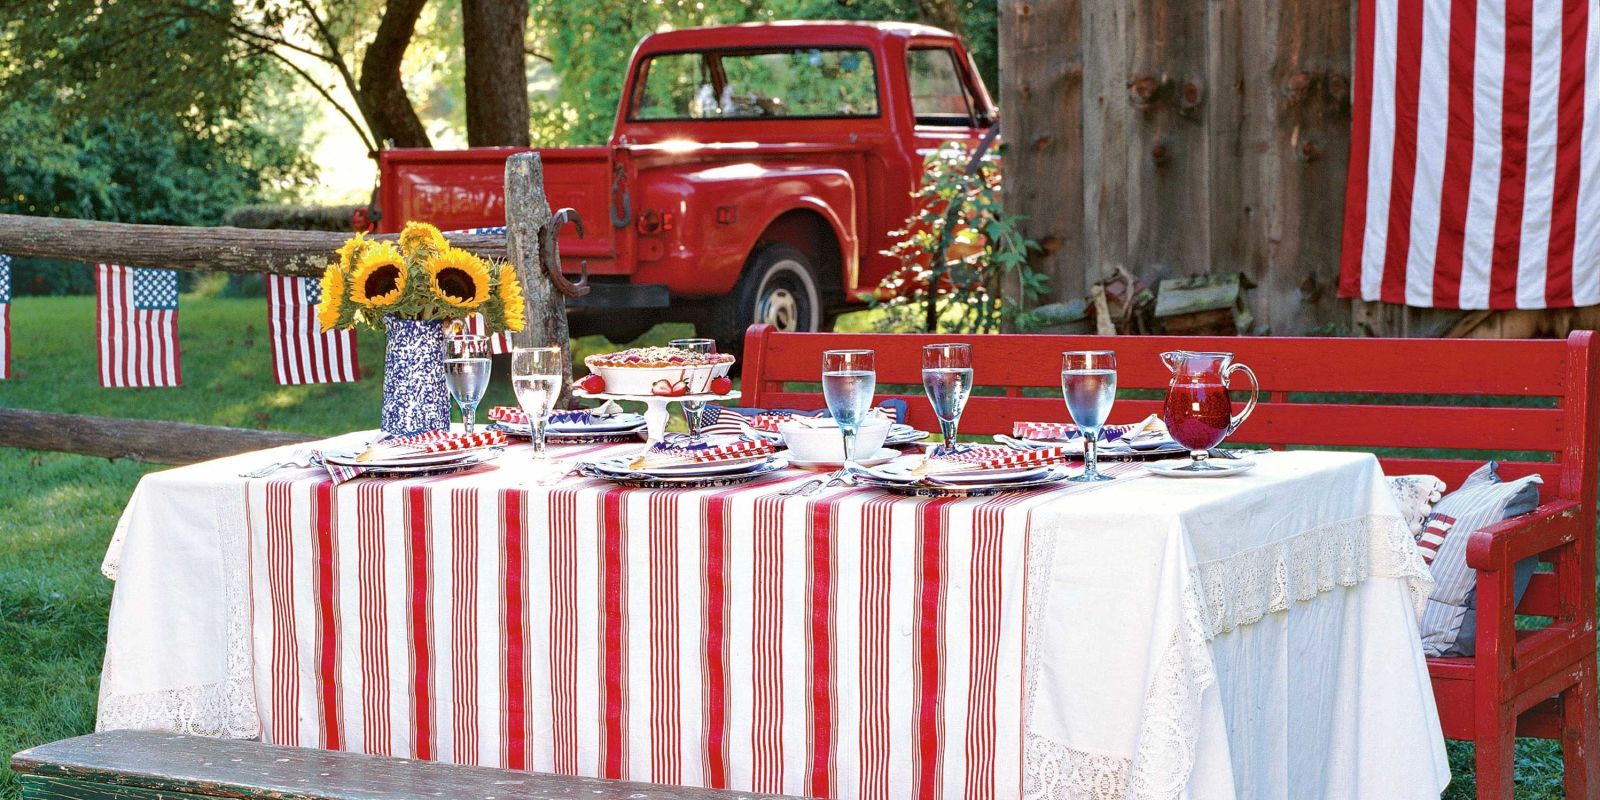 Picnic Themed Decorations 4th Of July Picnic Party Food And Decor